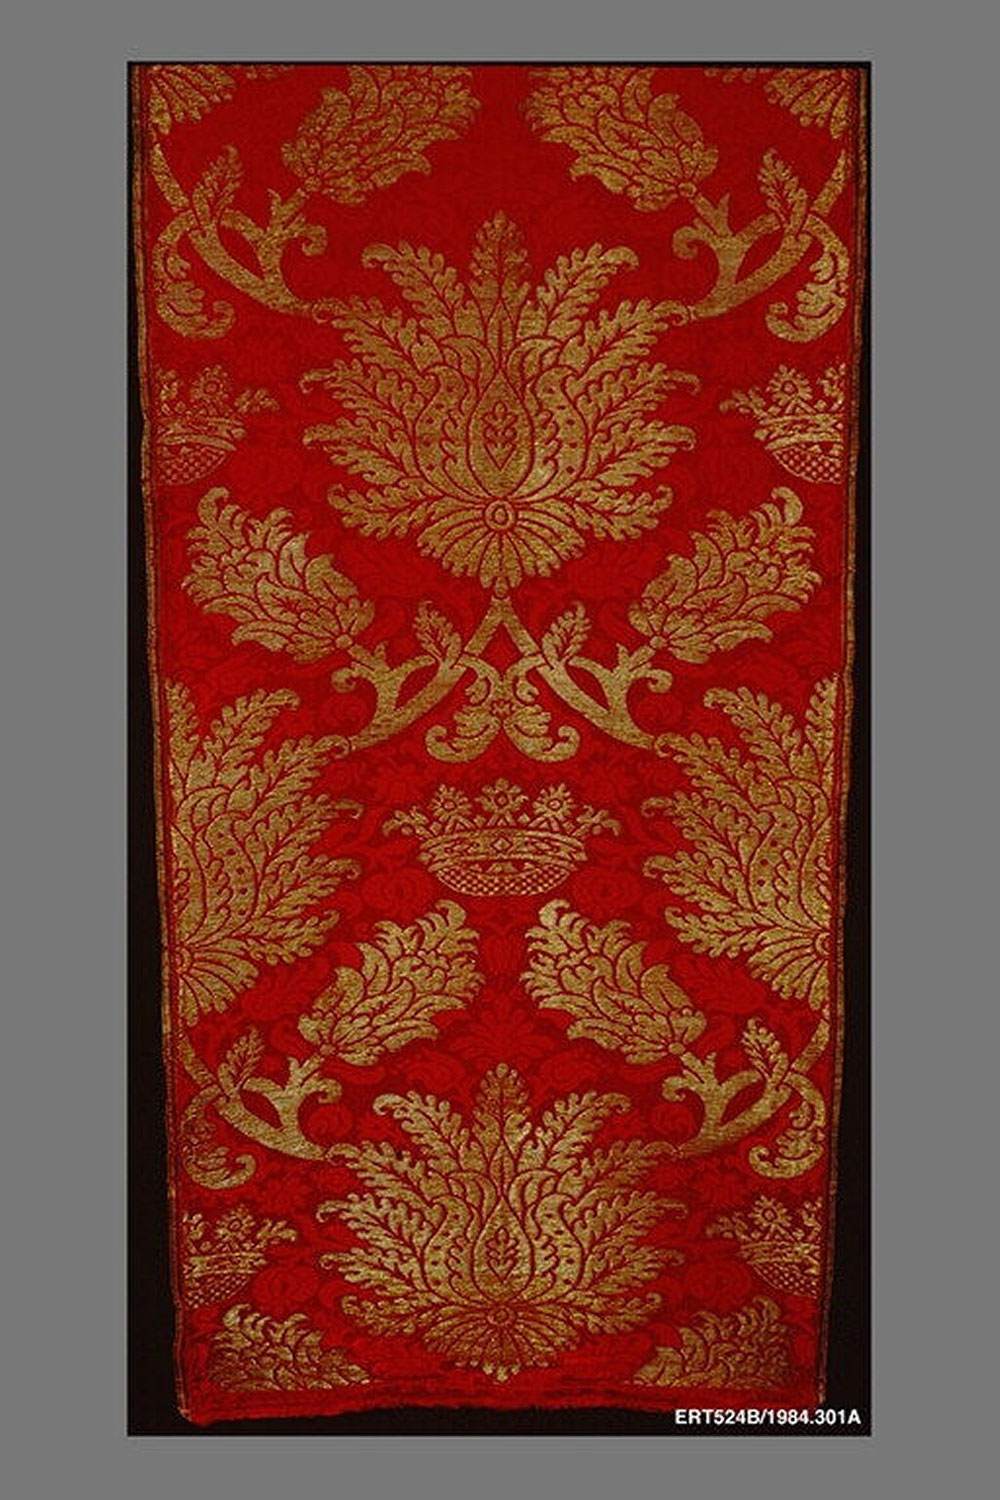 Panel, 17th century. Lent by the Metropolitan Museum of Art, Rogers Fund and Director's Discretionary Fund, 1984 (1984.301a).